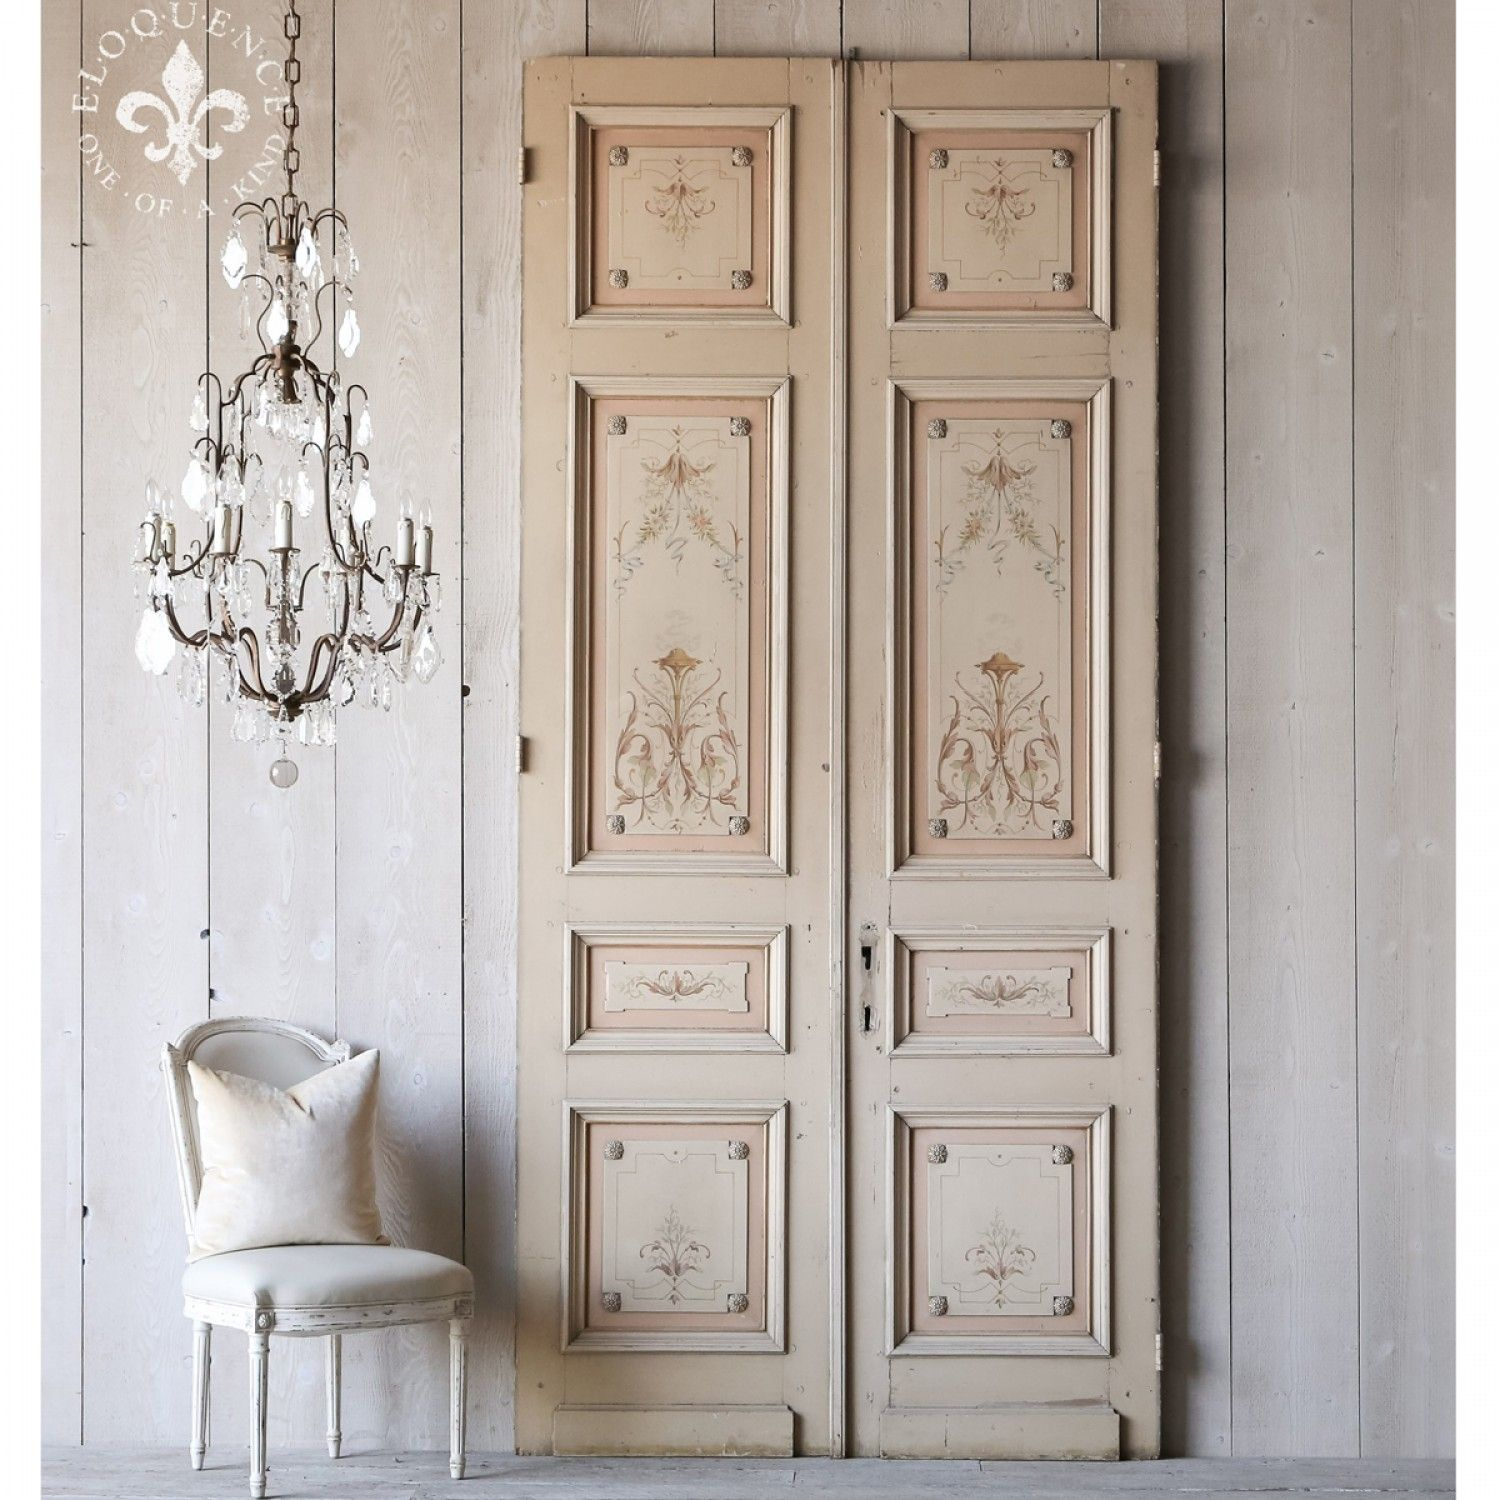 Beau Antique Double Doors Interior